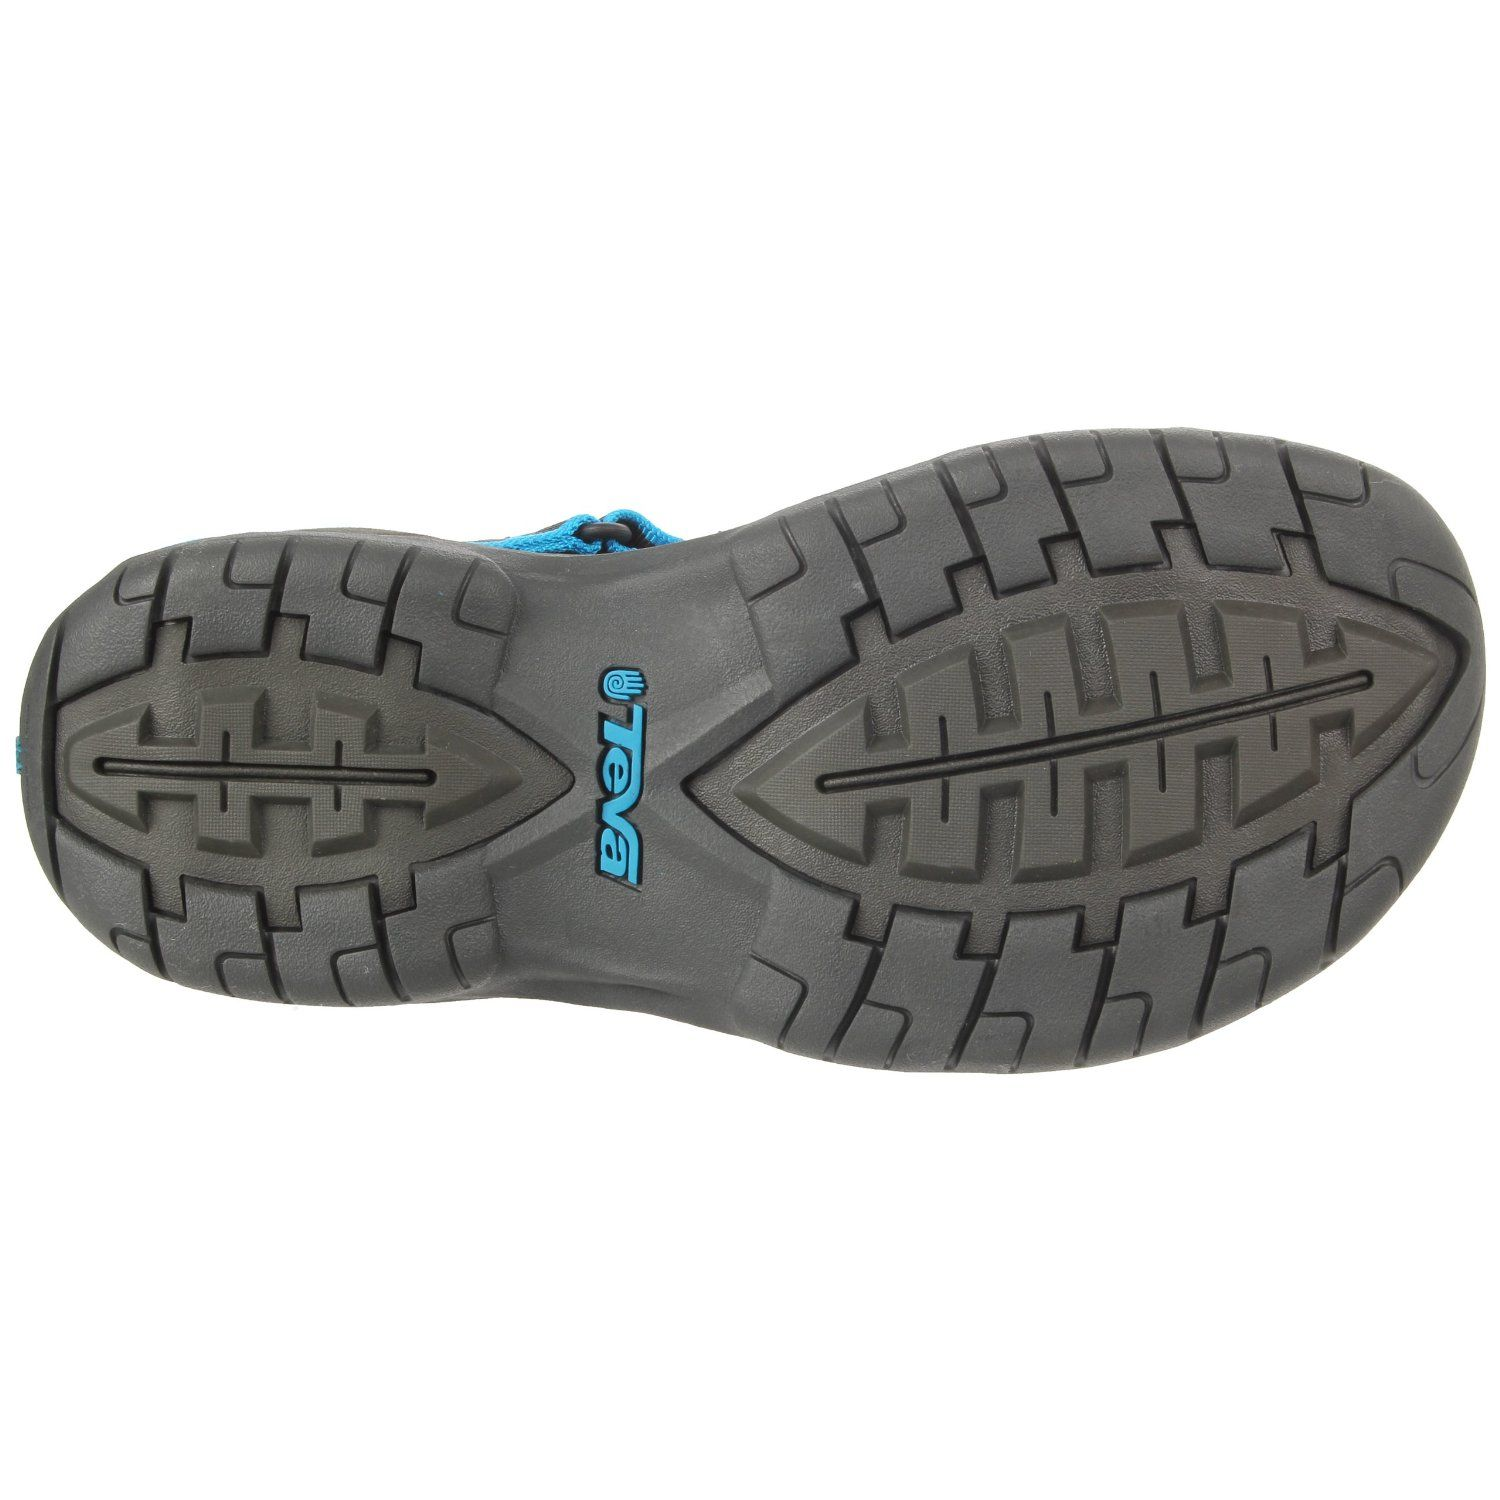 Teva Men's Tanza Sandal - designer shoes, handbags, jewelry, watches, and fashion accessories | endless.com